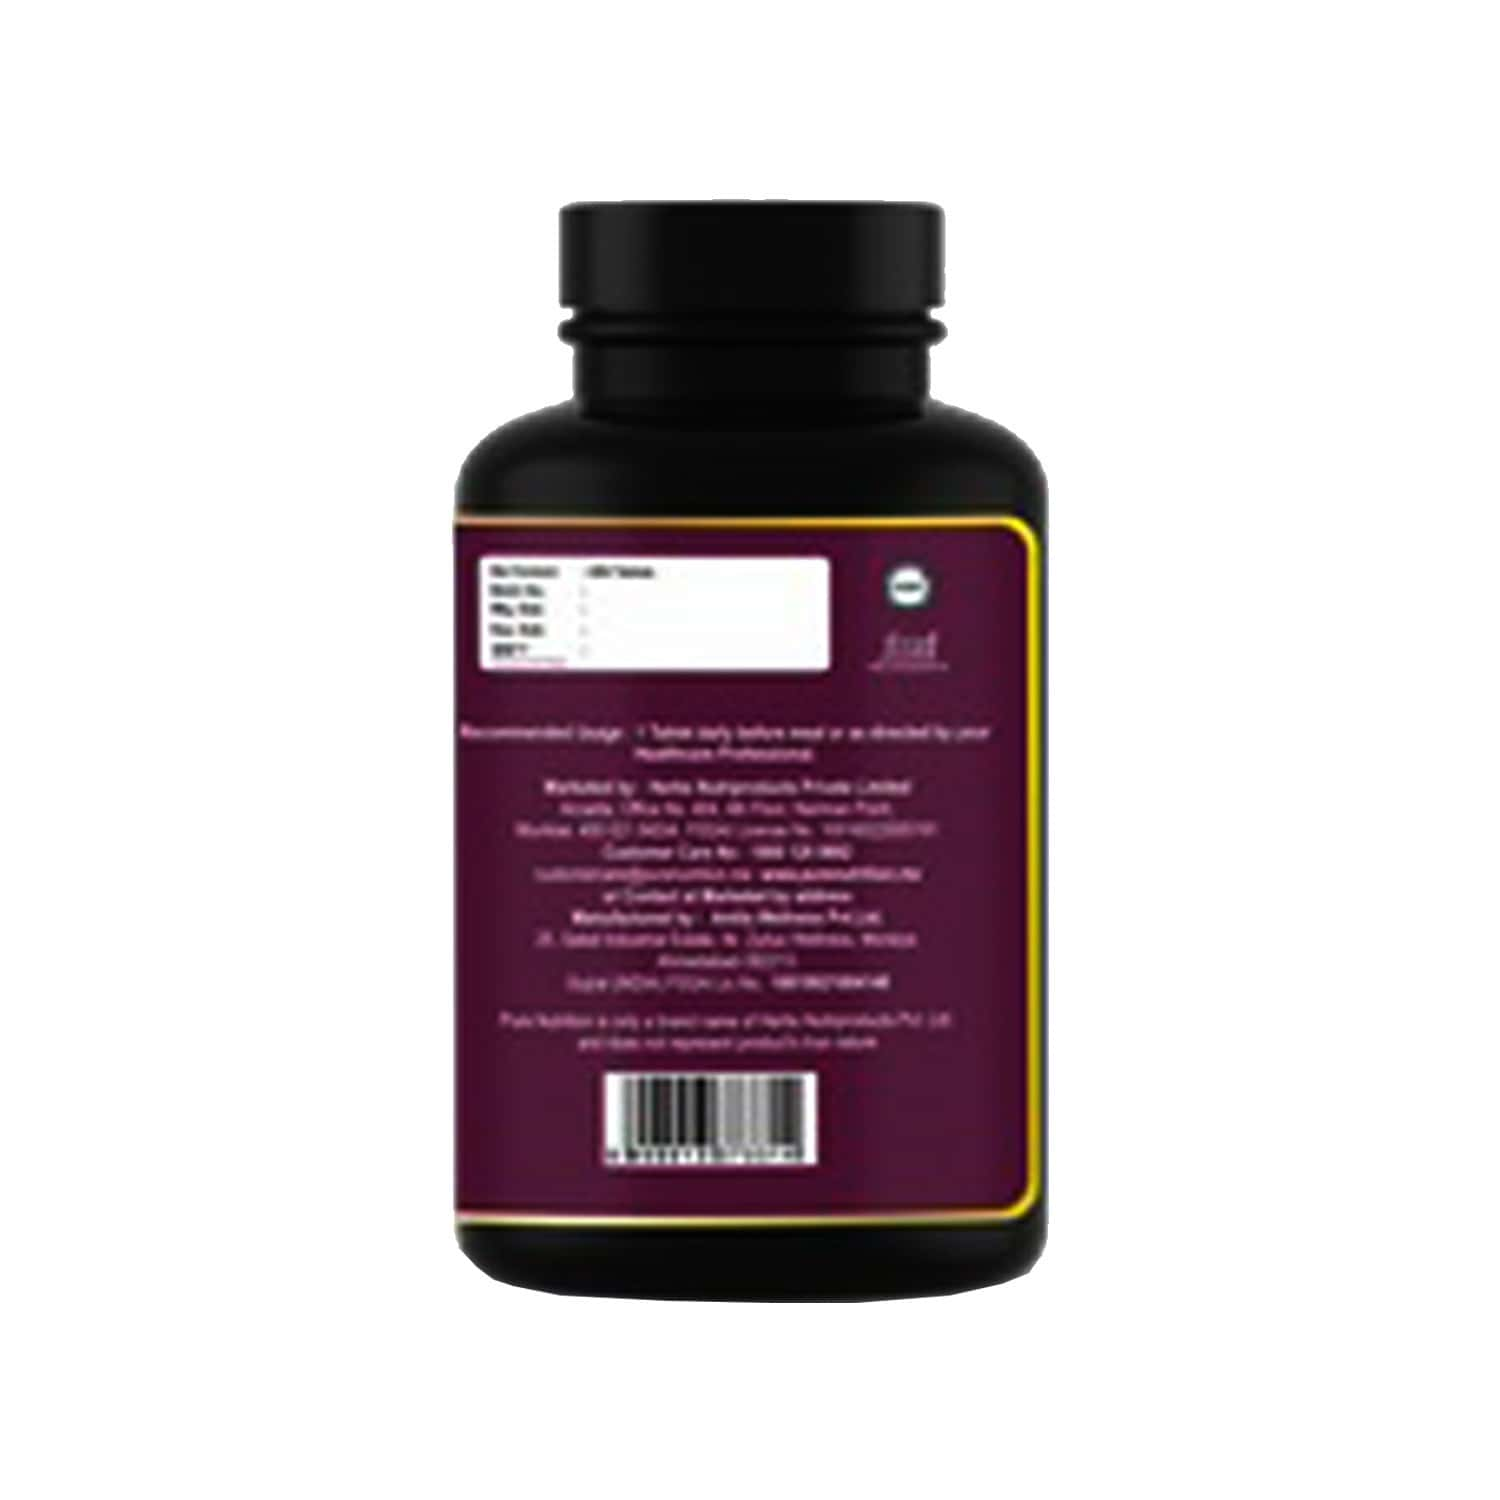 Pure Nutrition Biotin With Amla & Bamboo Extracts - Hair - Skin & Nail Support - Helps Support Energy Metabolism - 60 Tablets